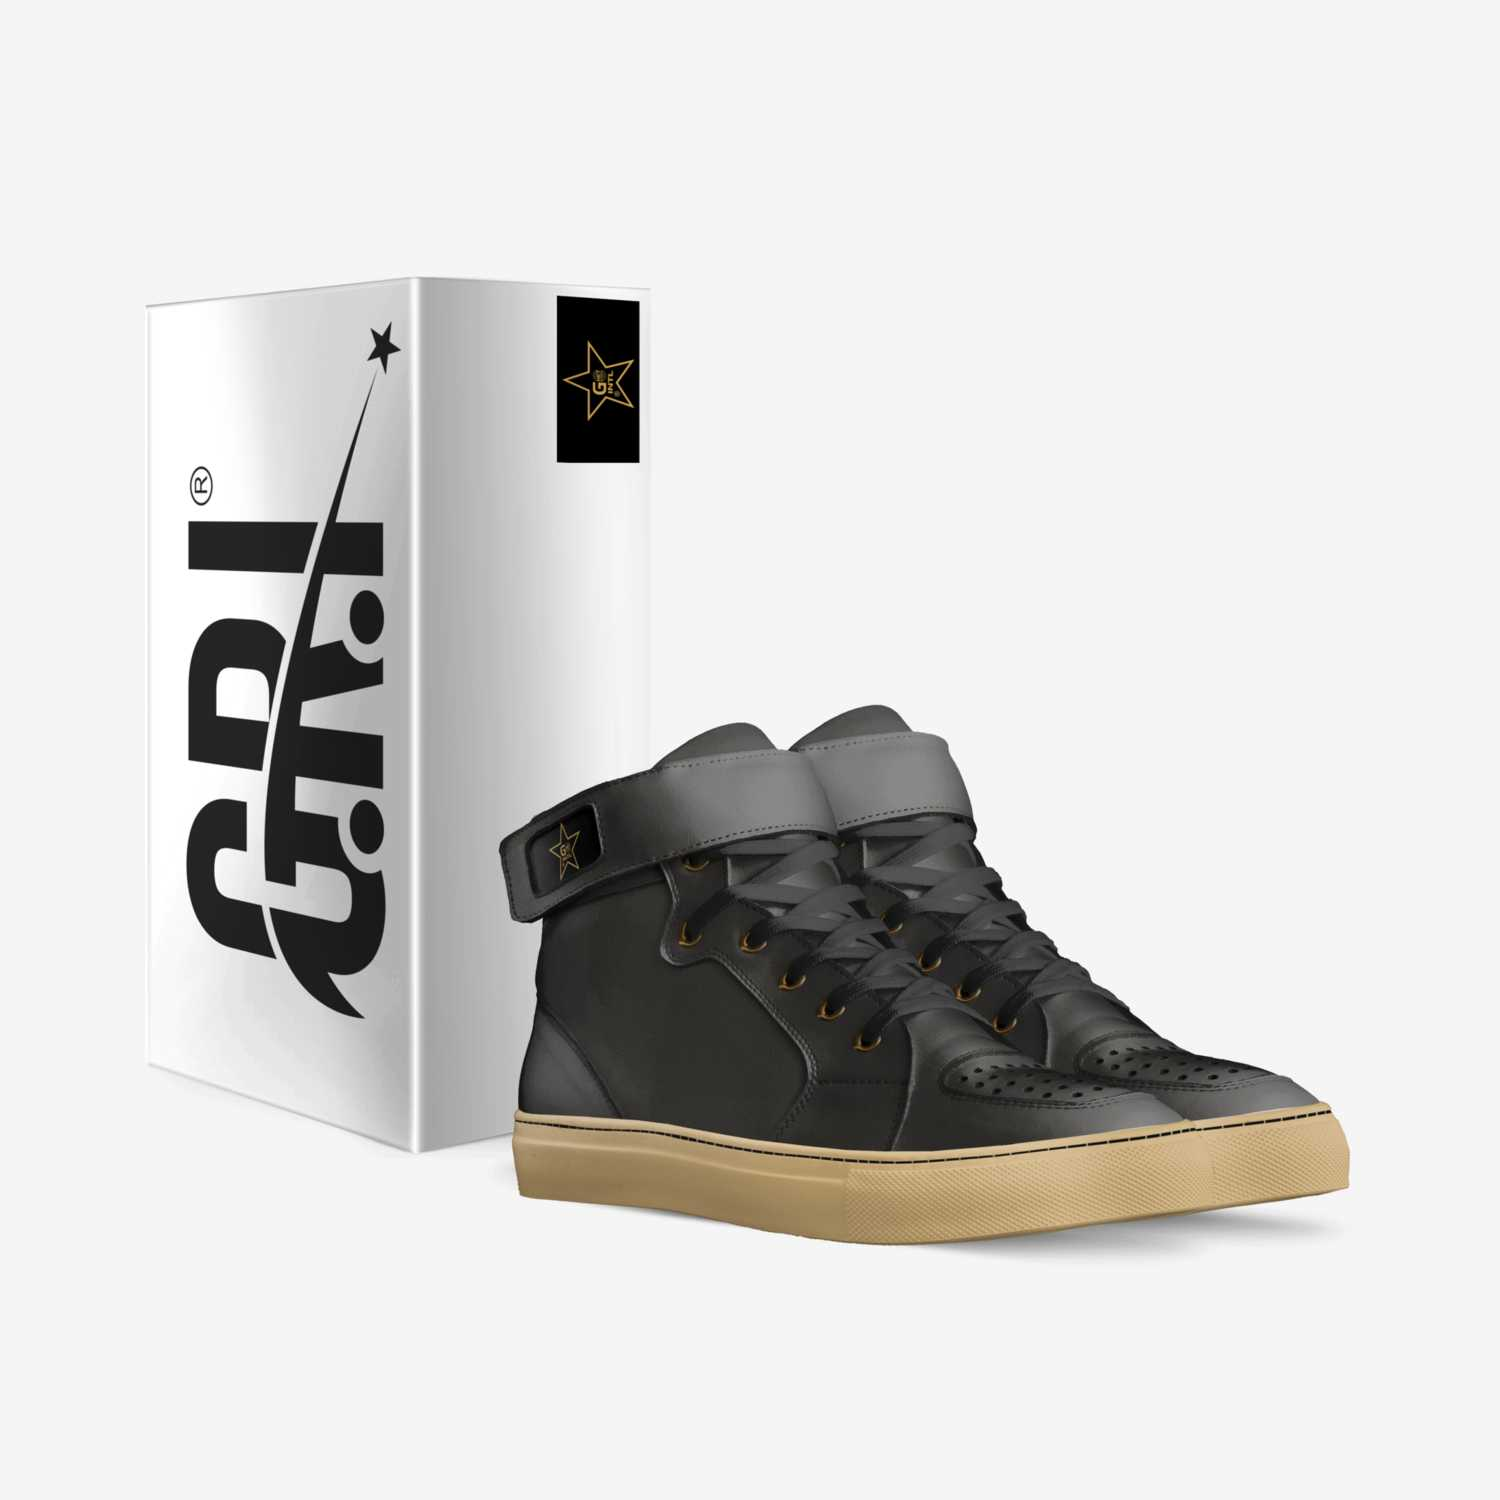 Ghet2Rock INTL  custom made in Italy shoes by Orlando Penny | Box view